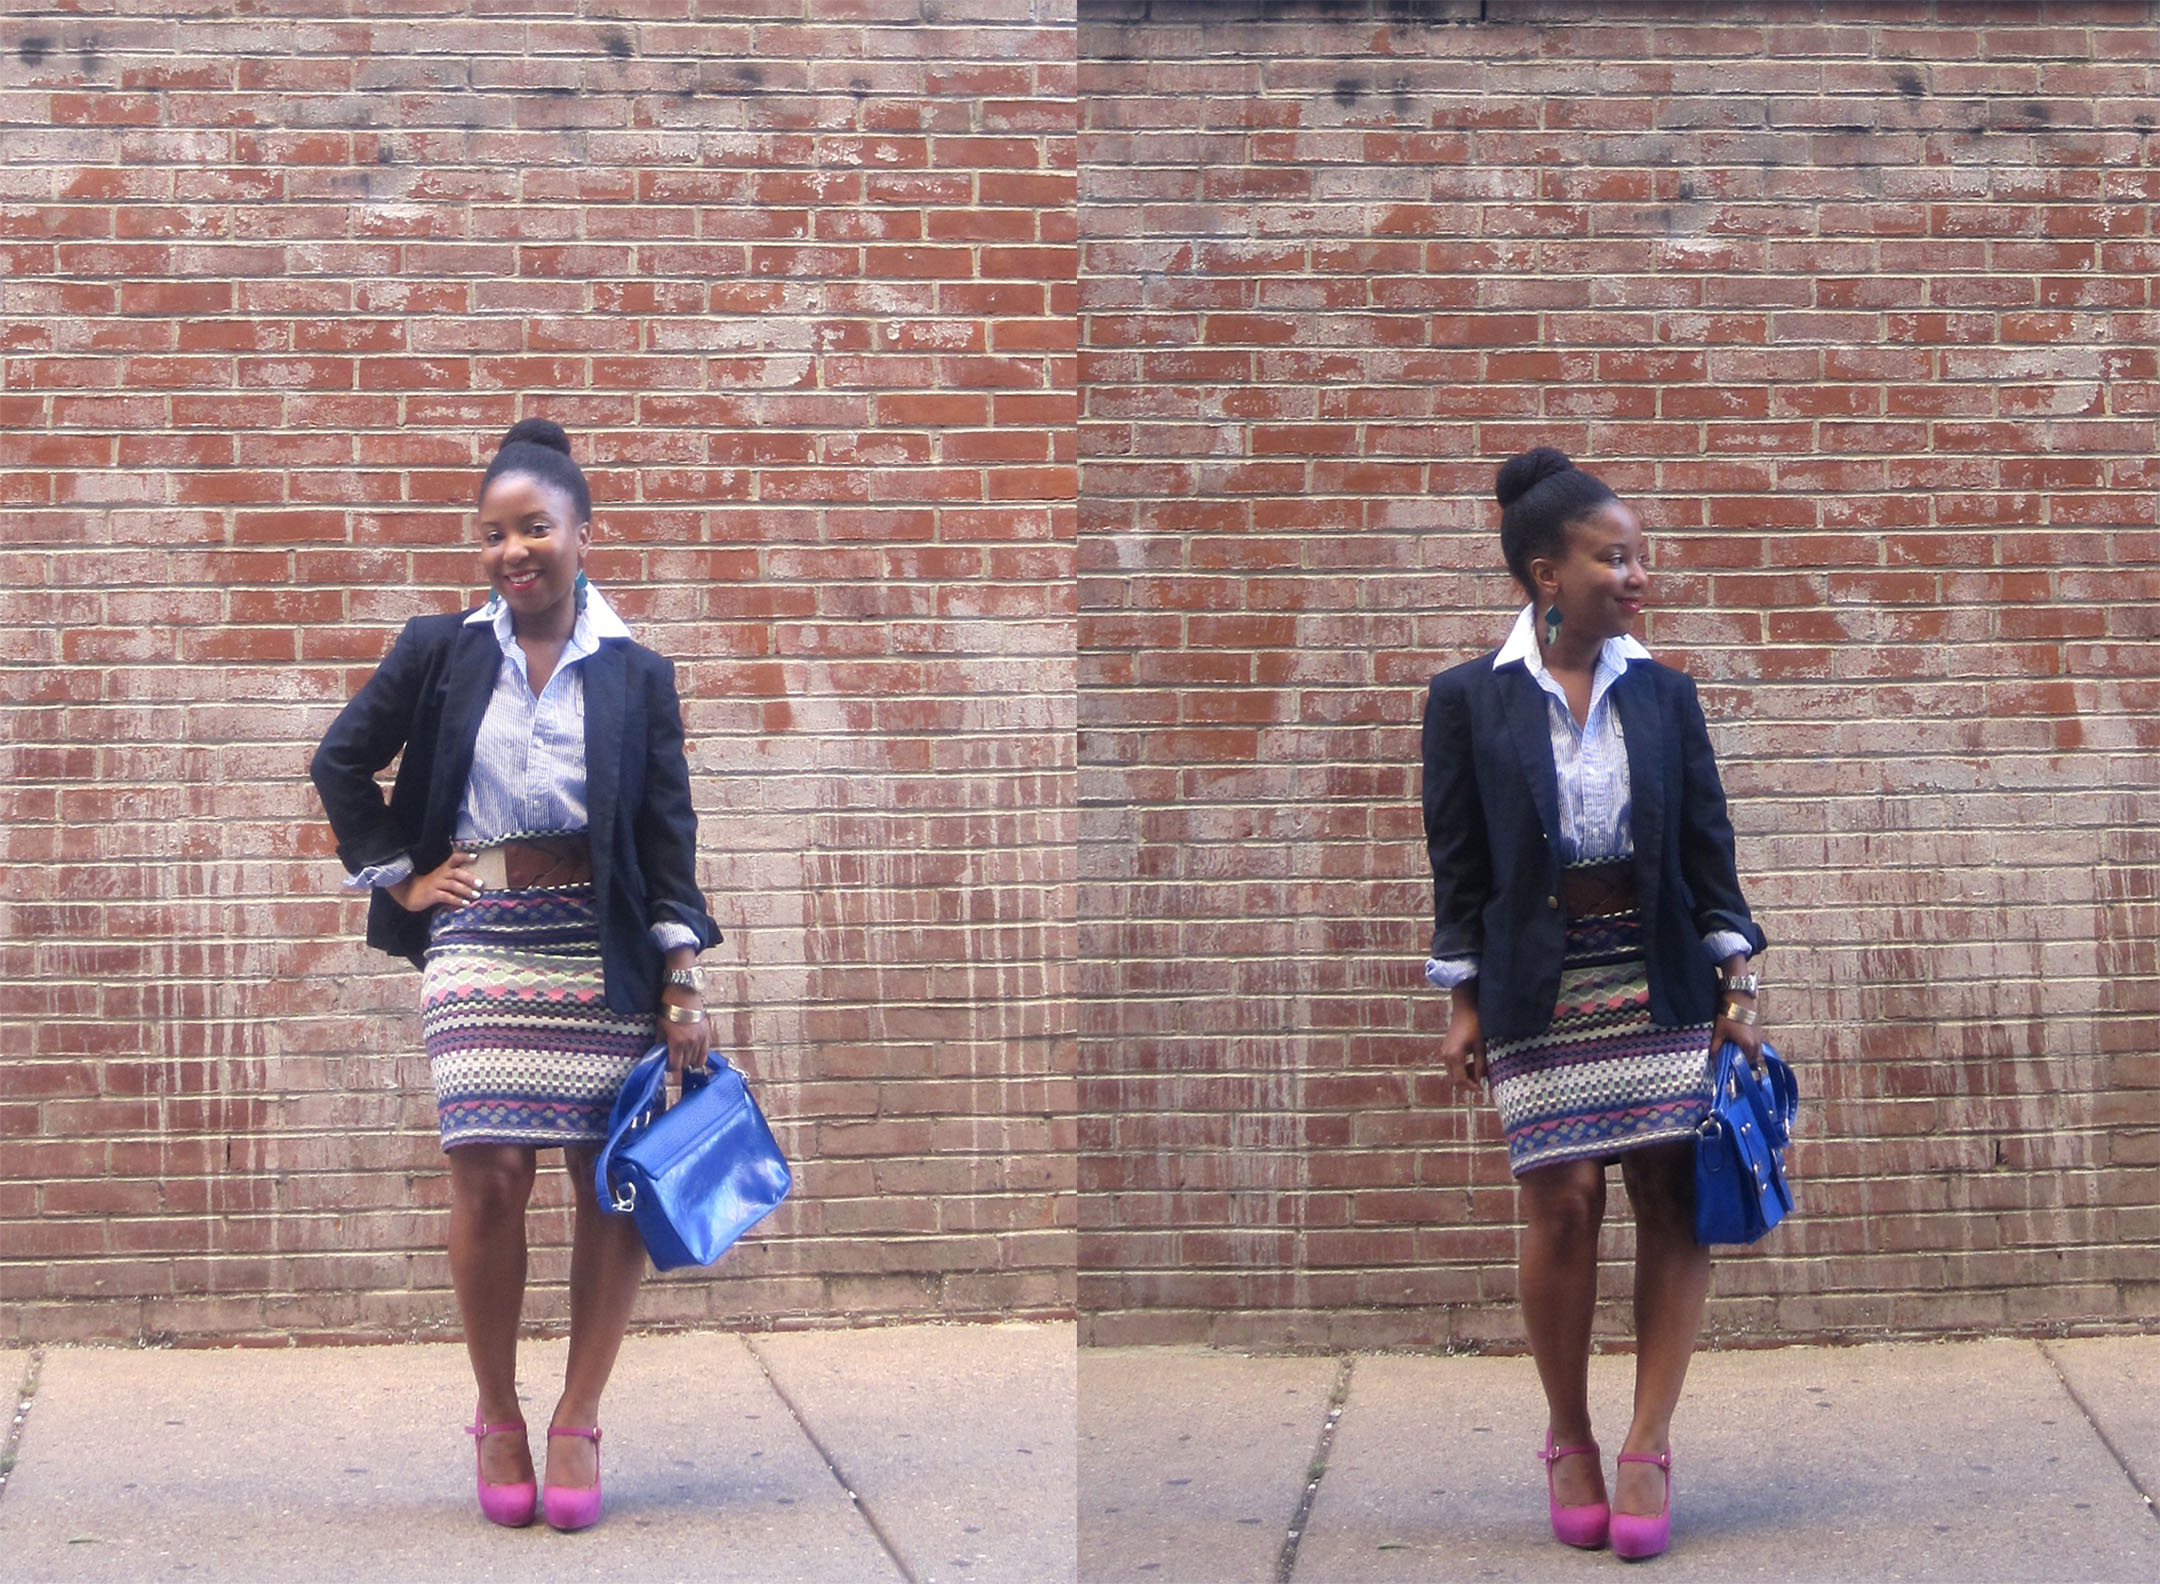 Blazer and mixed stripes